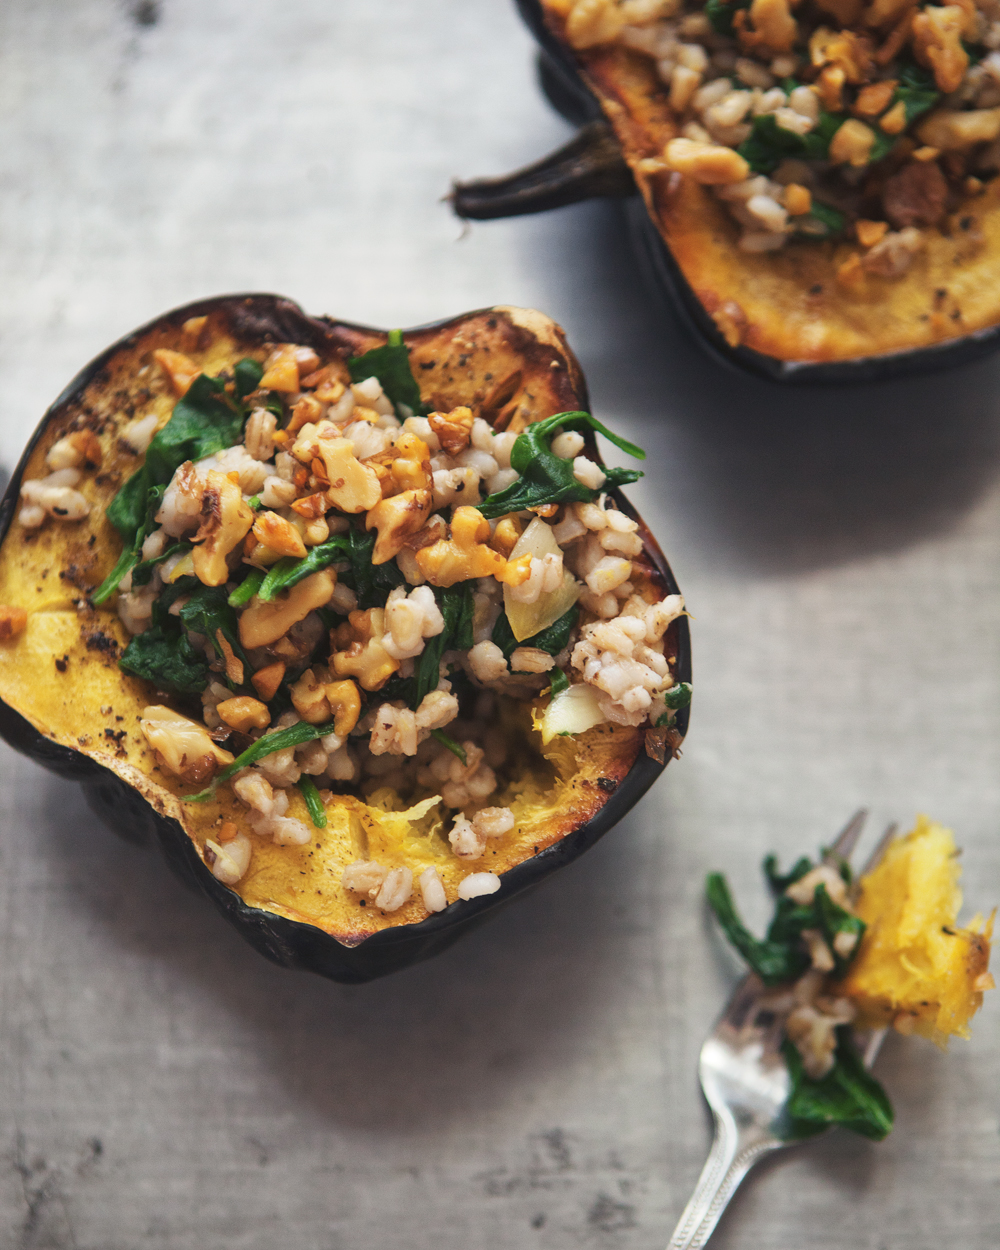 roasted acorn squash bowls with barley spinach salad_004.jpg